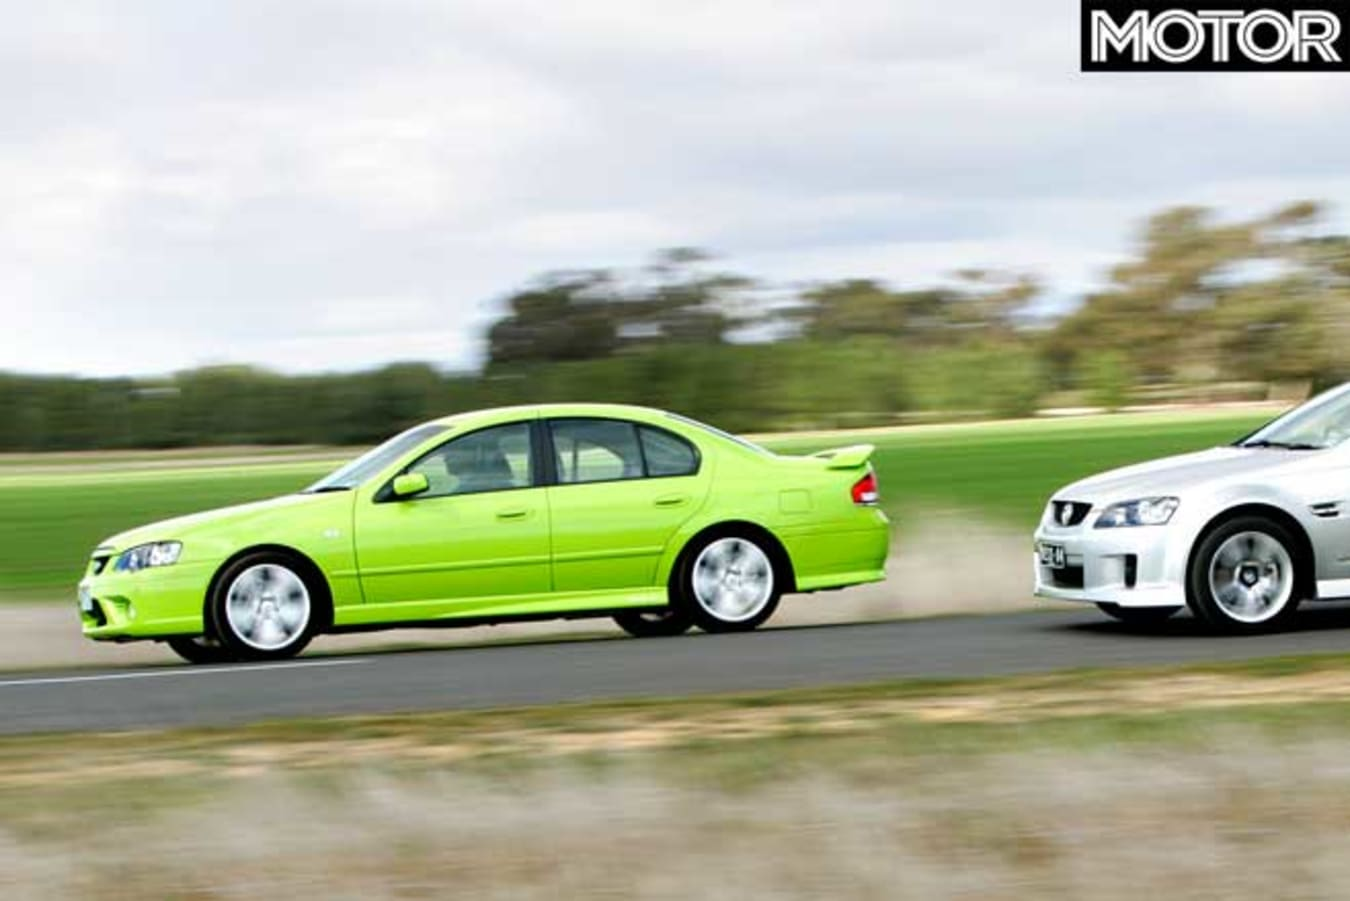 2006 Holden VE Commodore SS V Ford Falcon XR 6 T Comparison Test Jpg